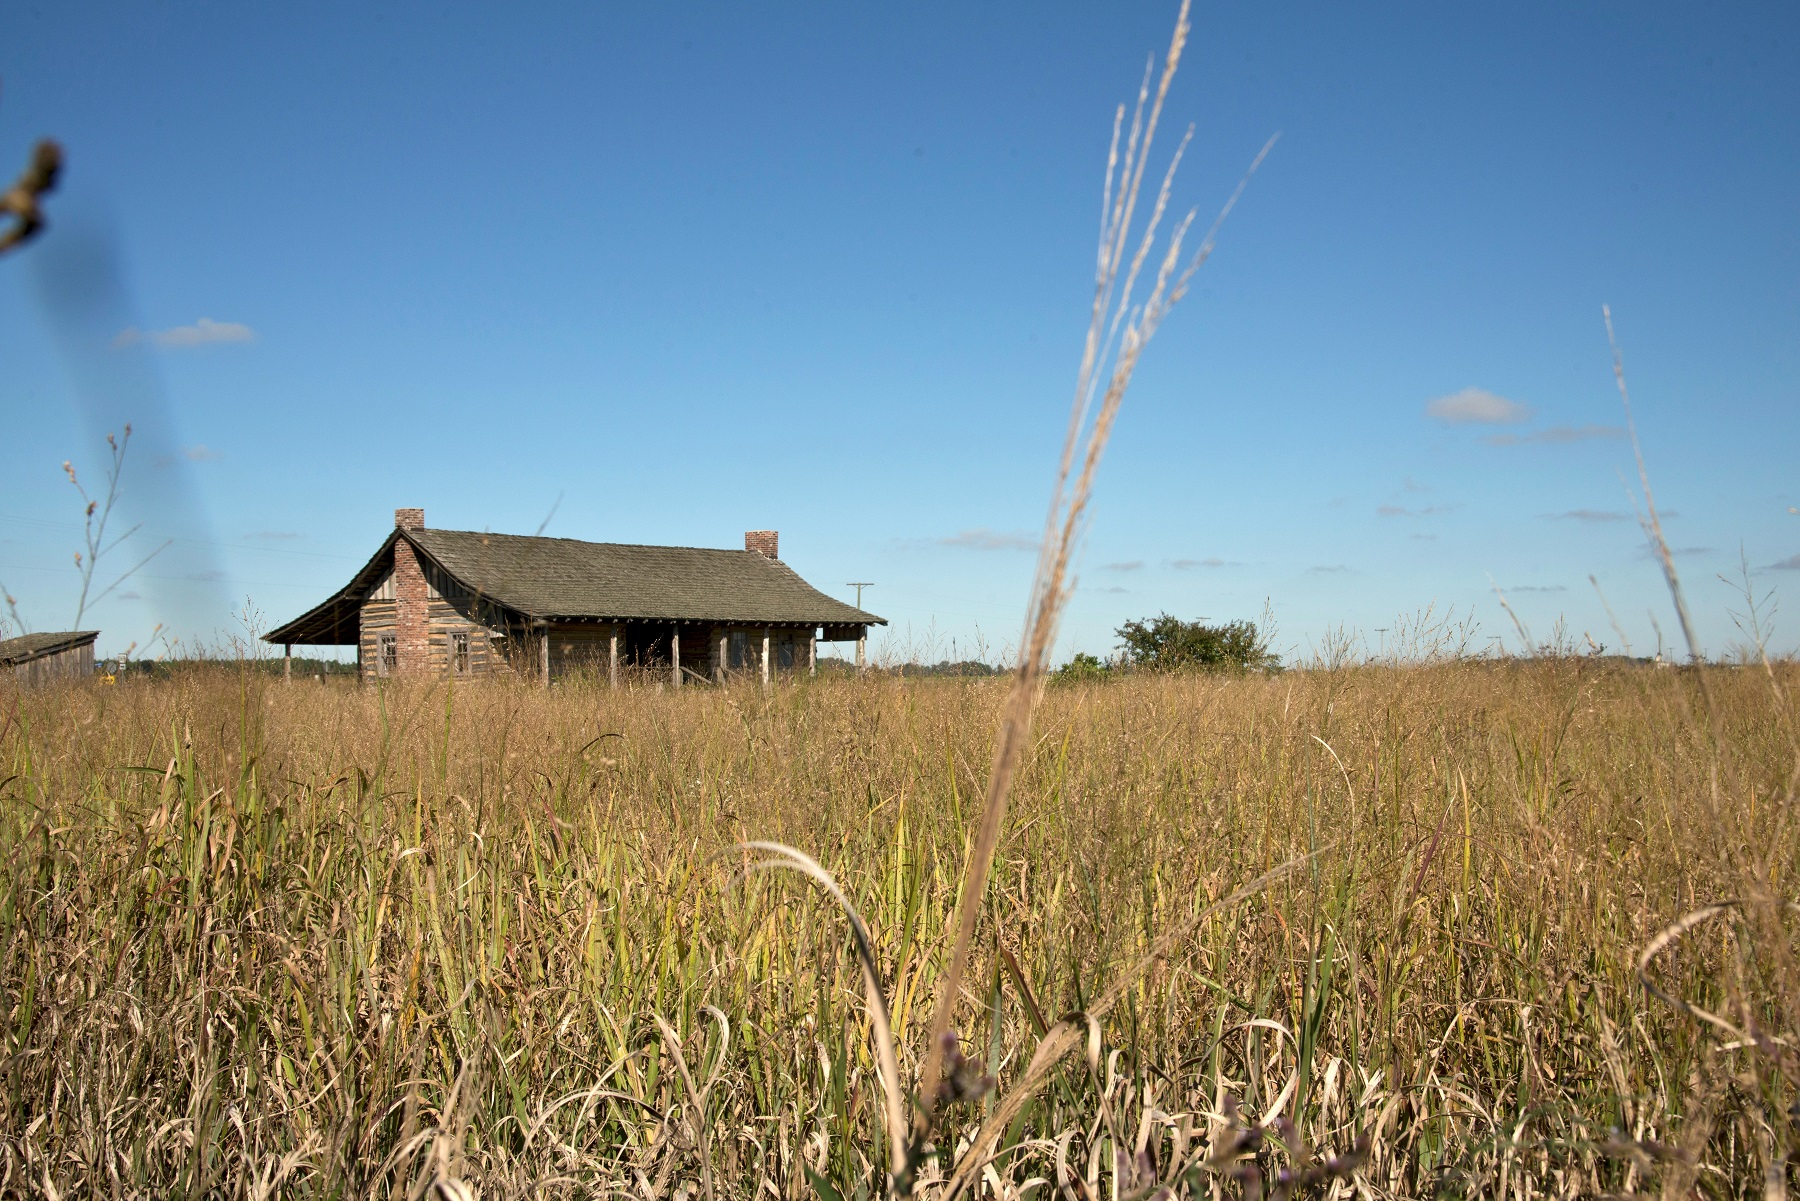 The 1877 dog trot log cabin stands less than half a mile from where it was originally built.